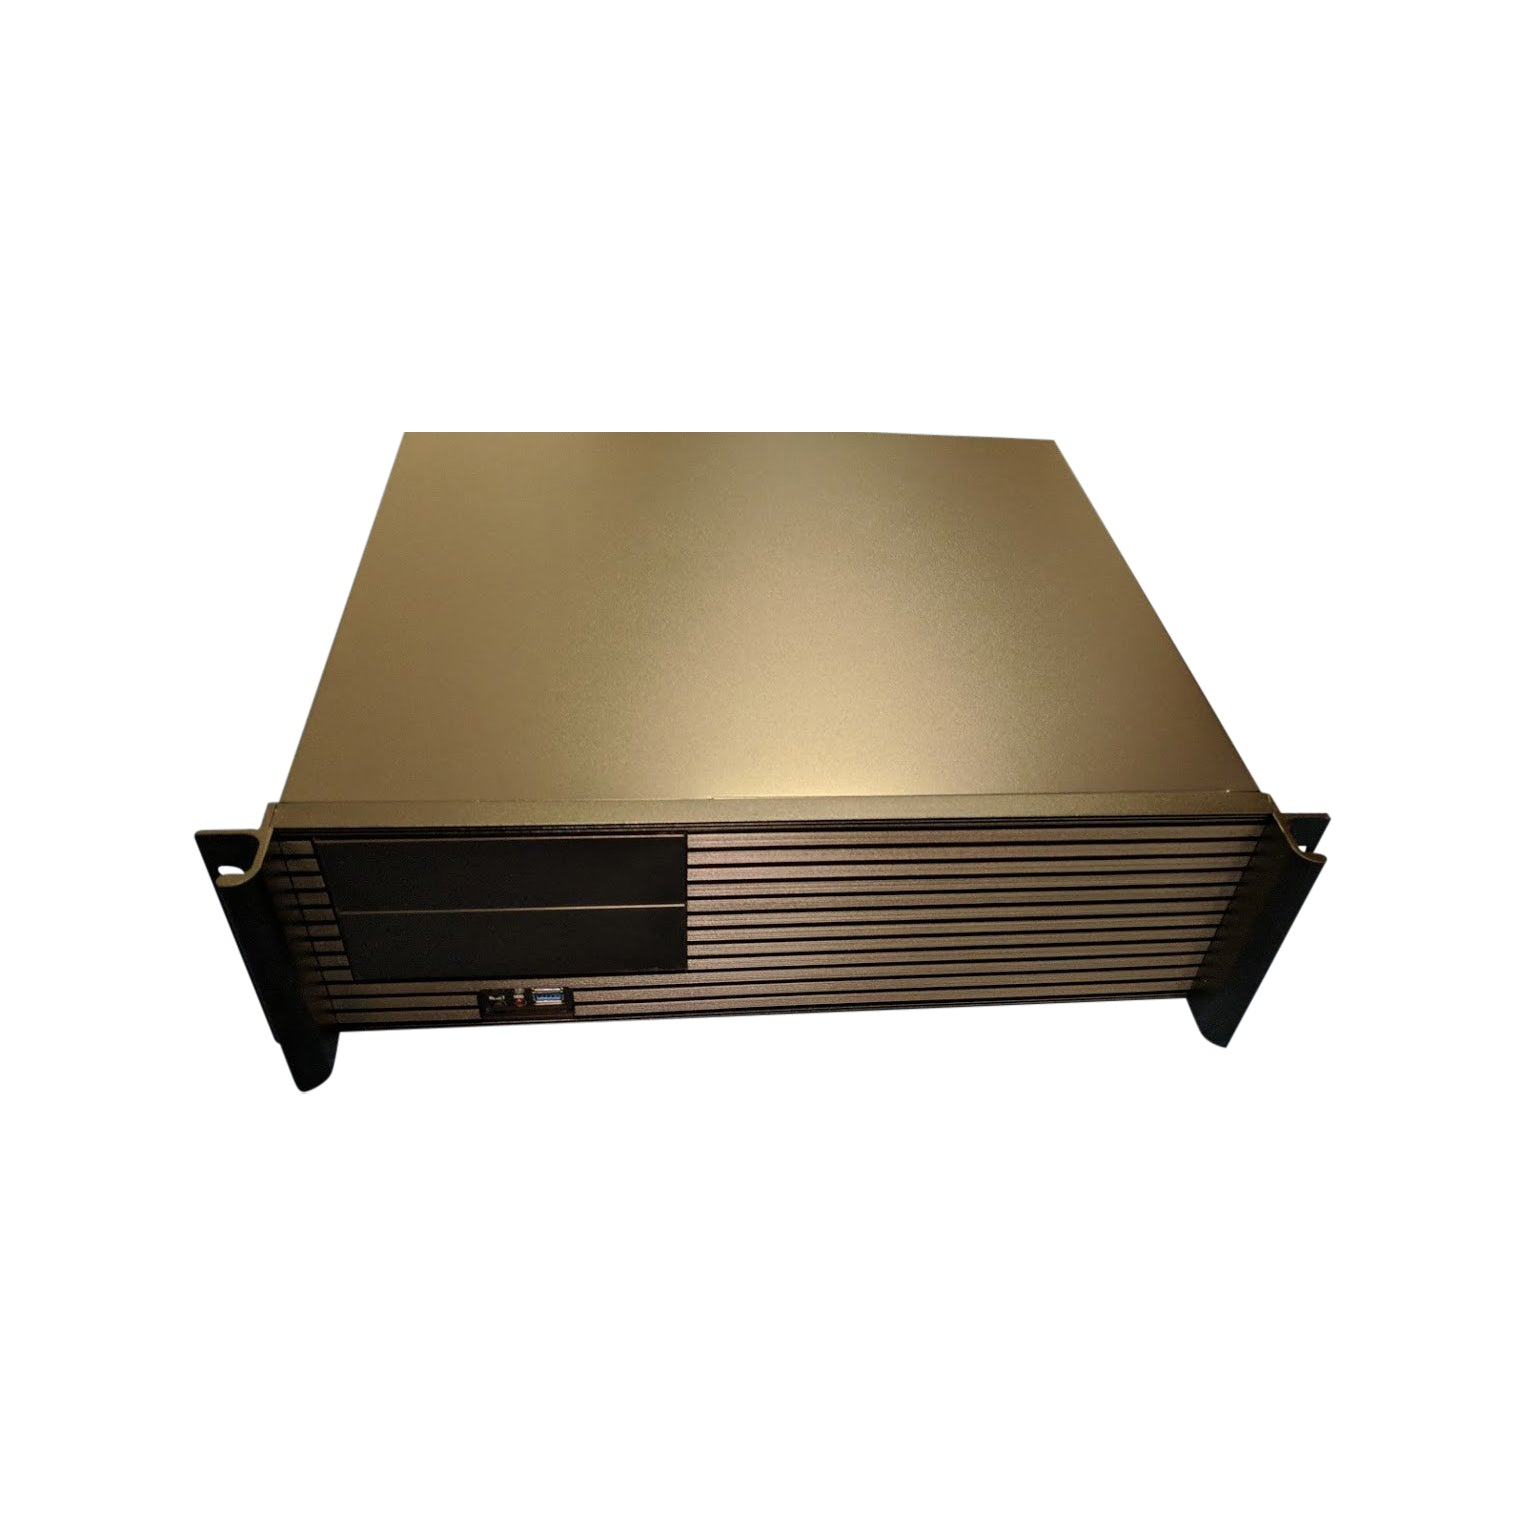 RackPc Chassis  X313 3u short  390mm  with Aluminium front panel Atx Support - USB 3 - X-Case.co.uk Ltd